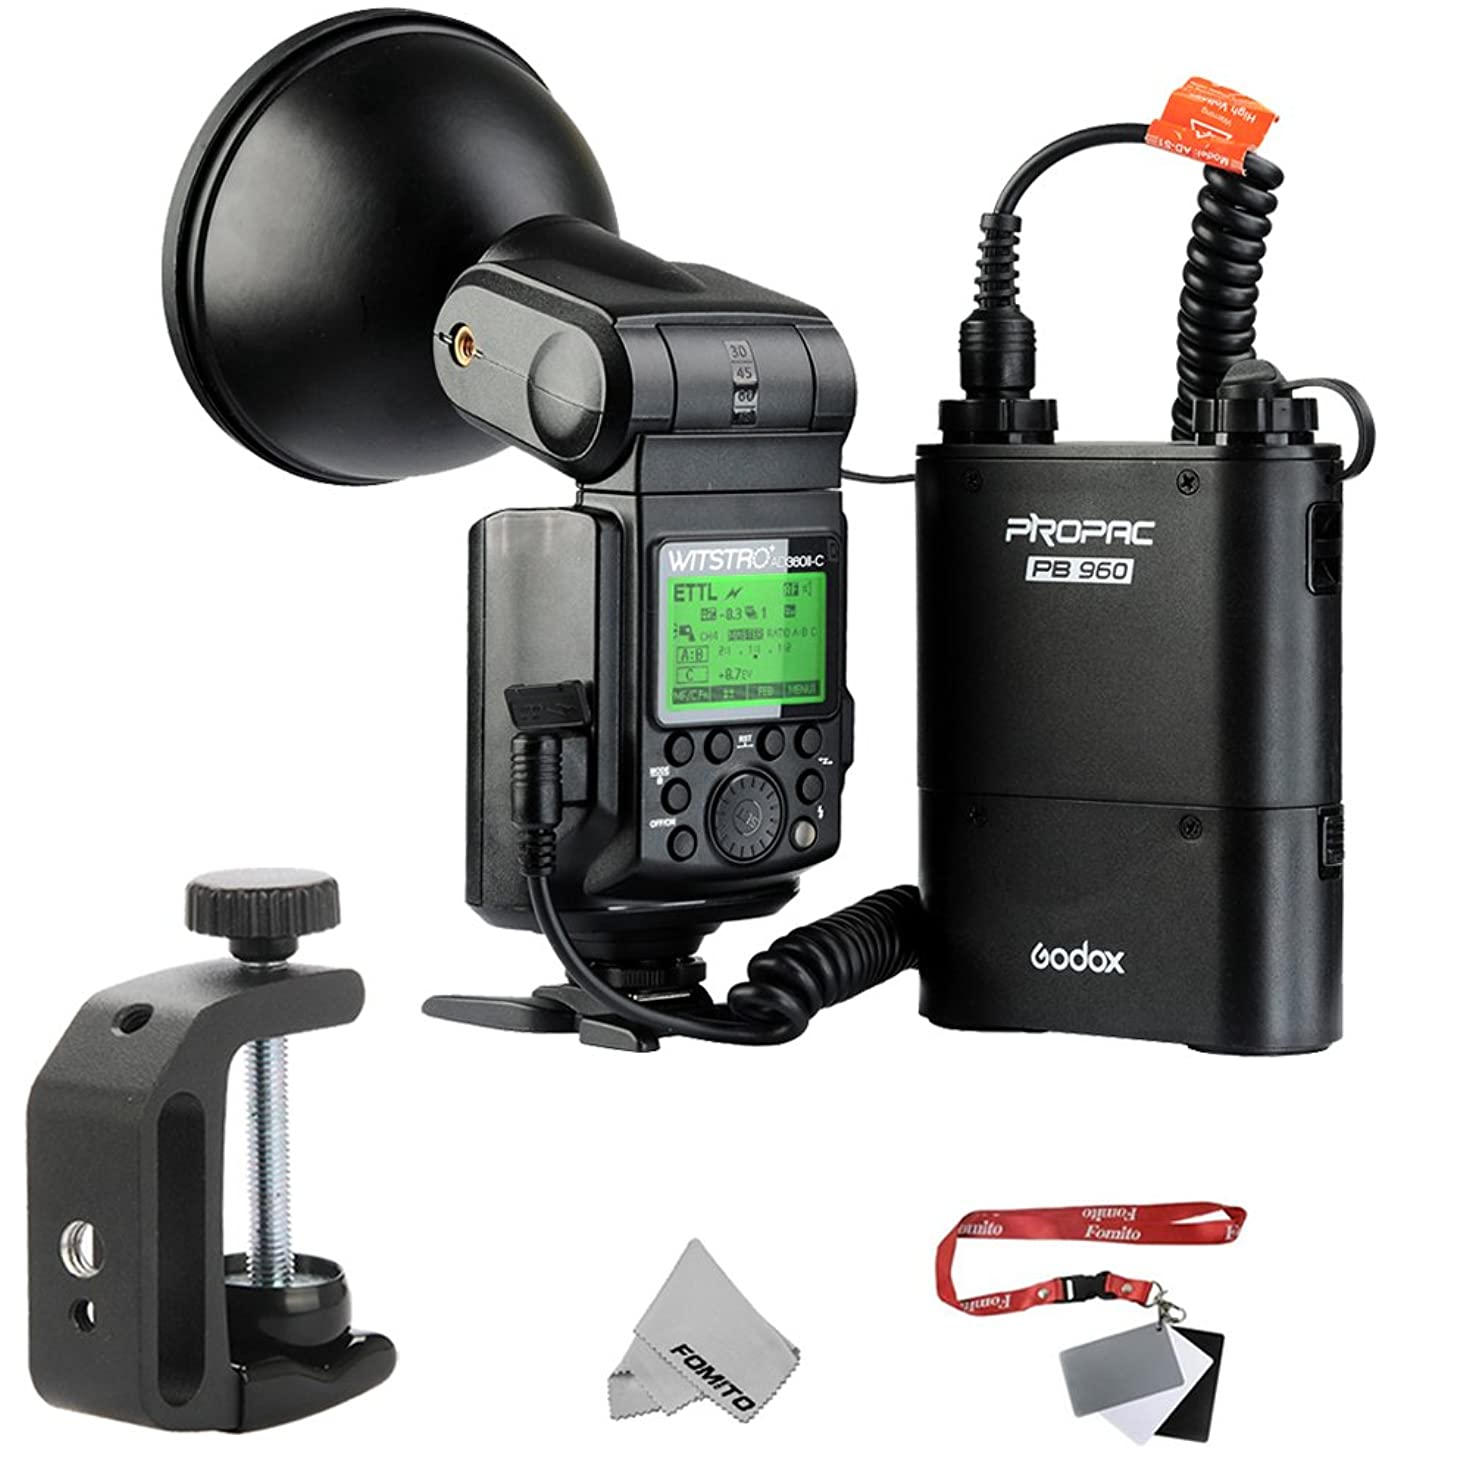 Godox AD360II Witstro Bare Bulb Flash Unit Speedlight HSS E-TTTL GN80 360Ws Built-in 2.4GHz Radio Transceiver for Canon EOS 5DIII 5D 750D 7D DSLR Cameras + 4500mAh PB960 Lithium Battery Pack Black